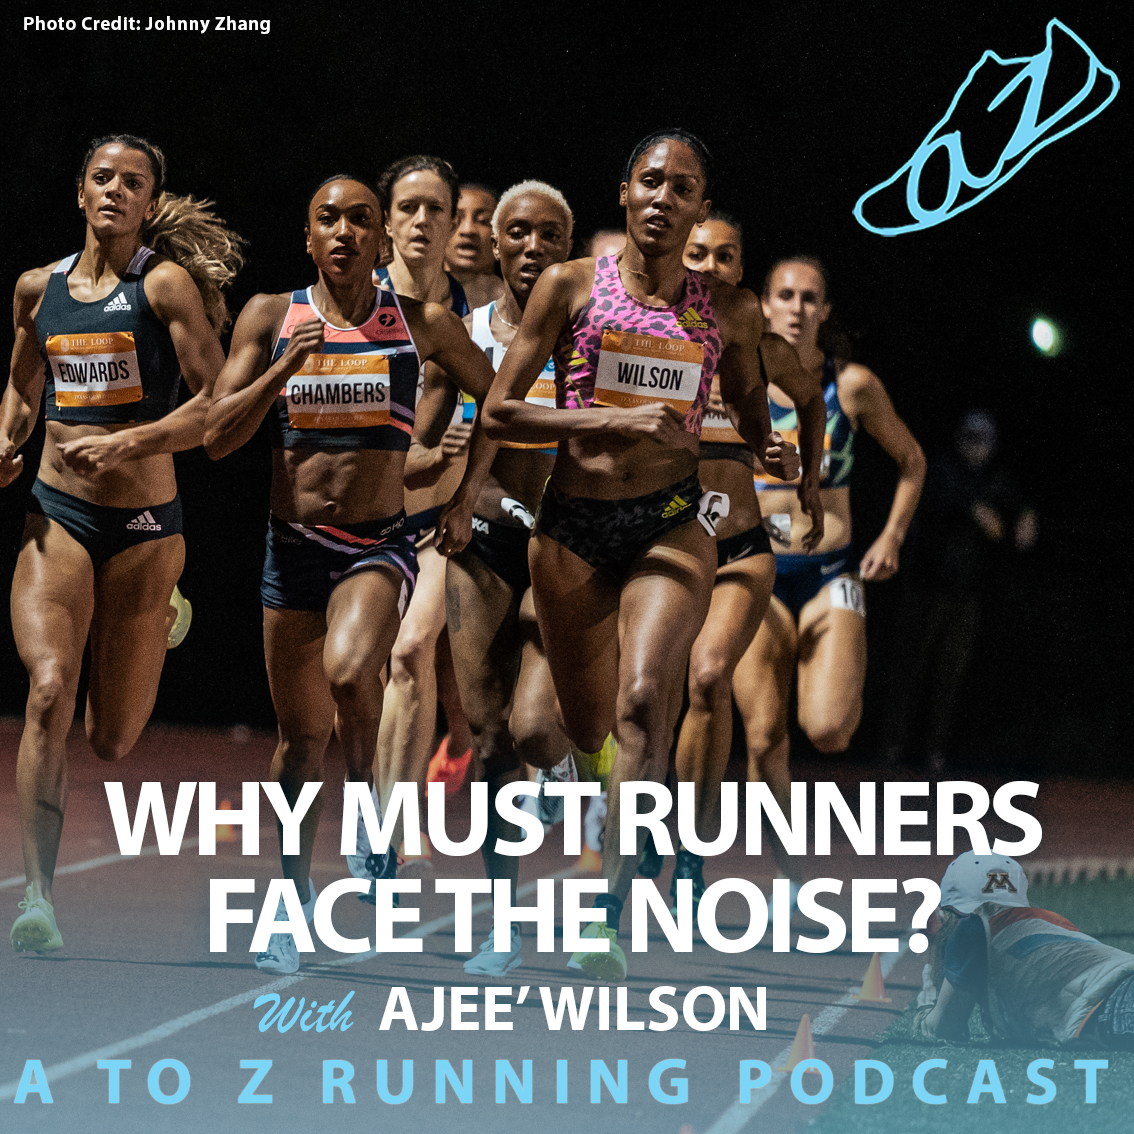 Why must runners face the noise with Ajee Wilson